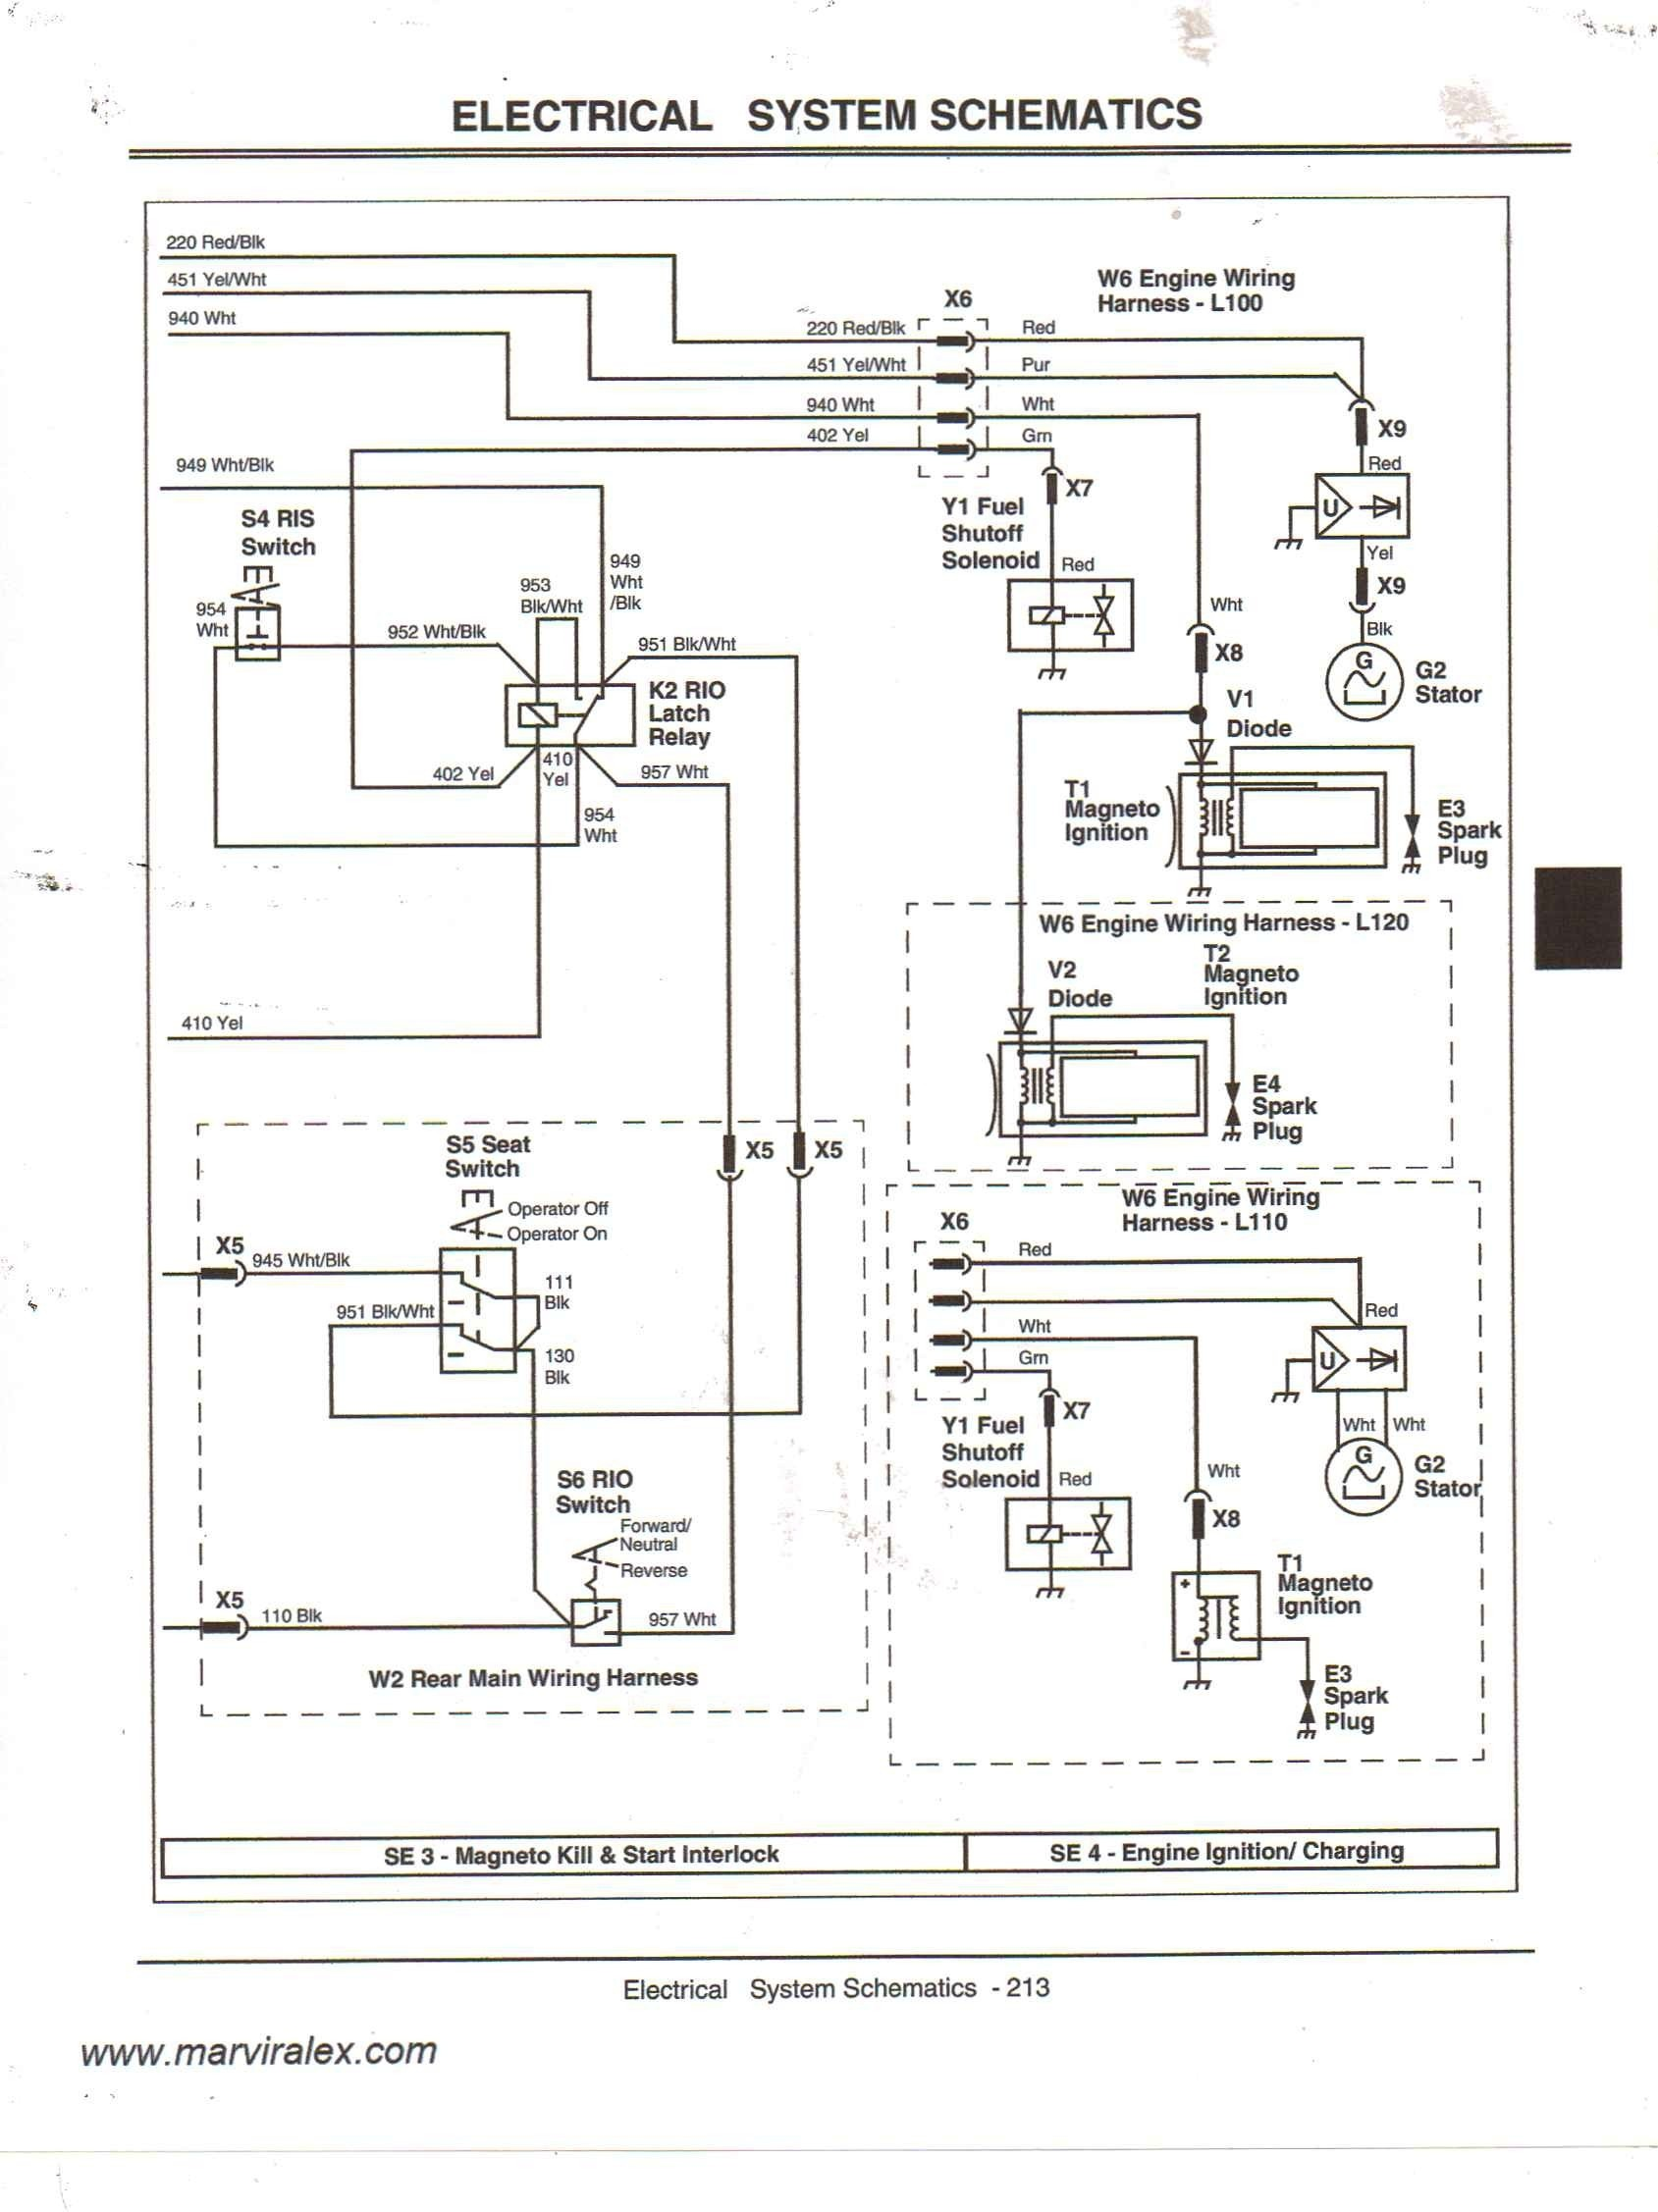 A Wiring Diagram for A 345 Jd Tractor Nd 2800] Wiring Diagram John Deere F525 Also John Deere F525 Of A Wiring Diagram for A 345 Jd Tractor